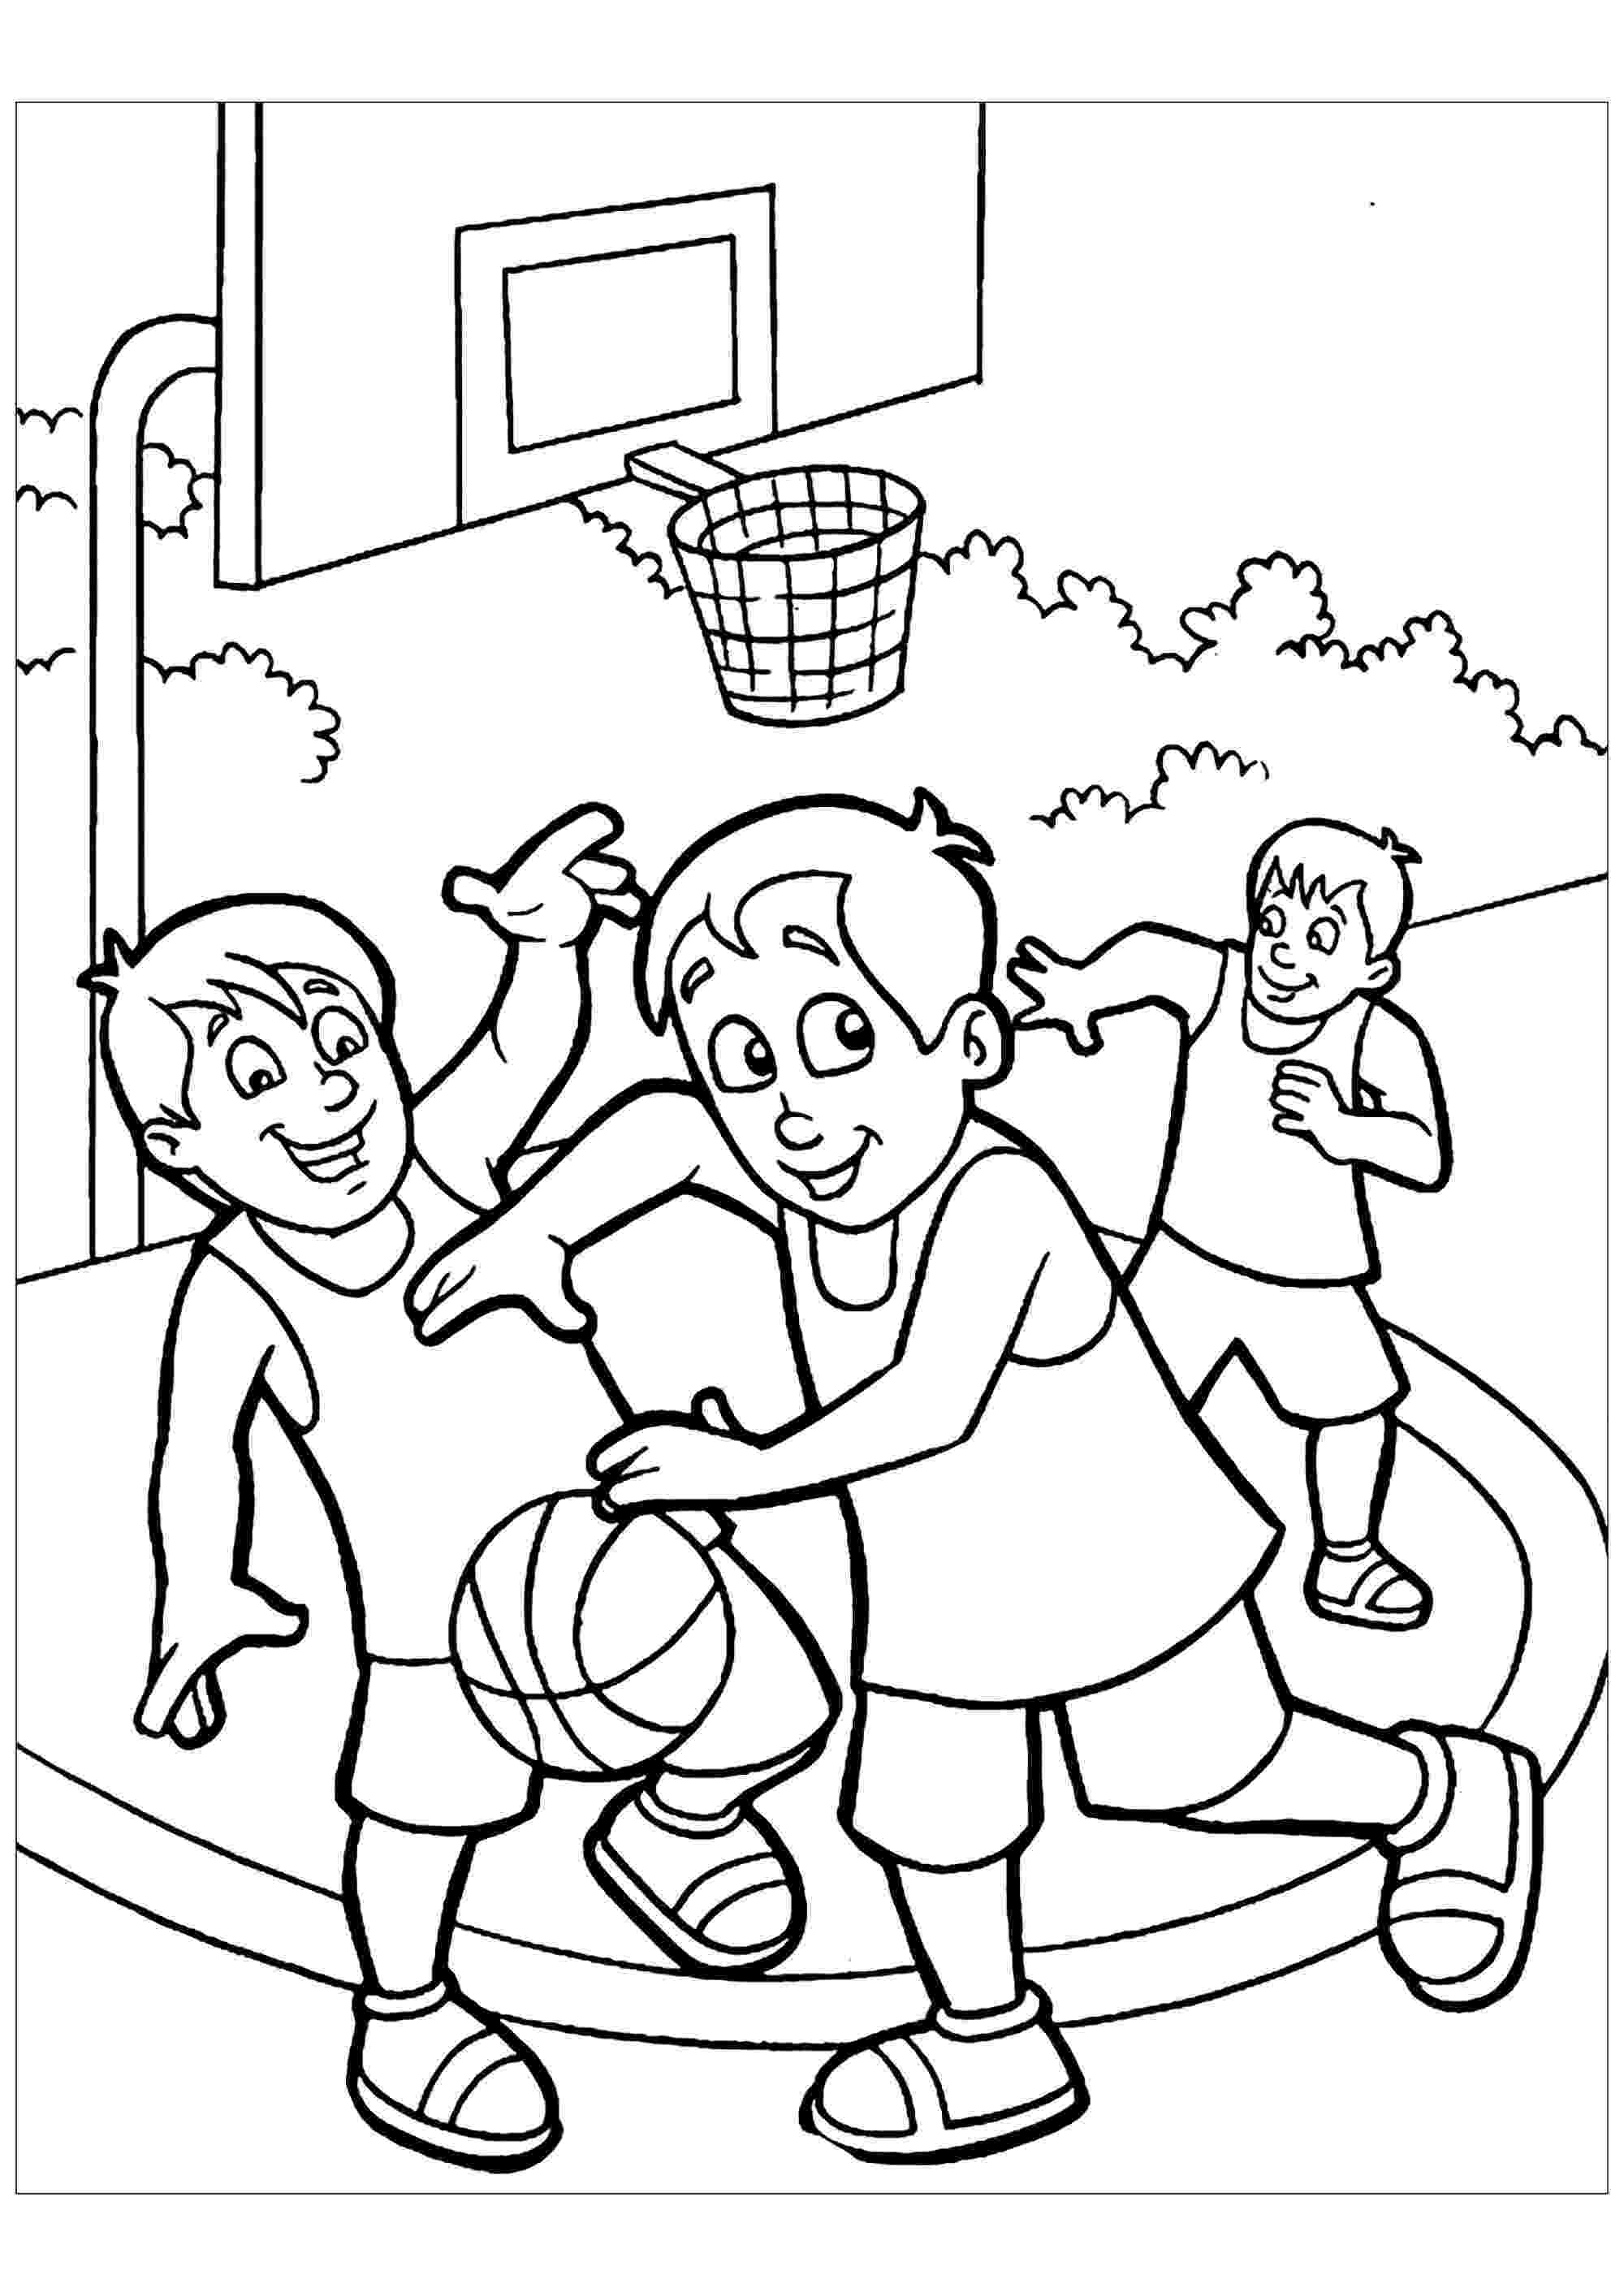 basketball pictures to color basketball coloring pages 14 basketball color to pictures